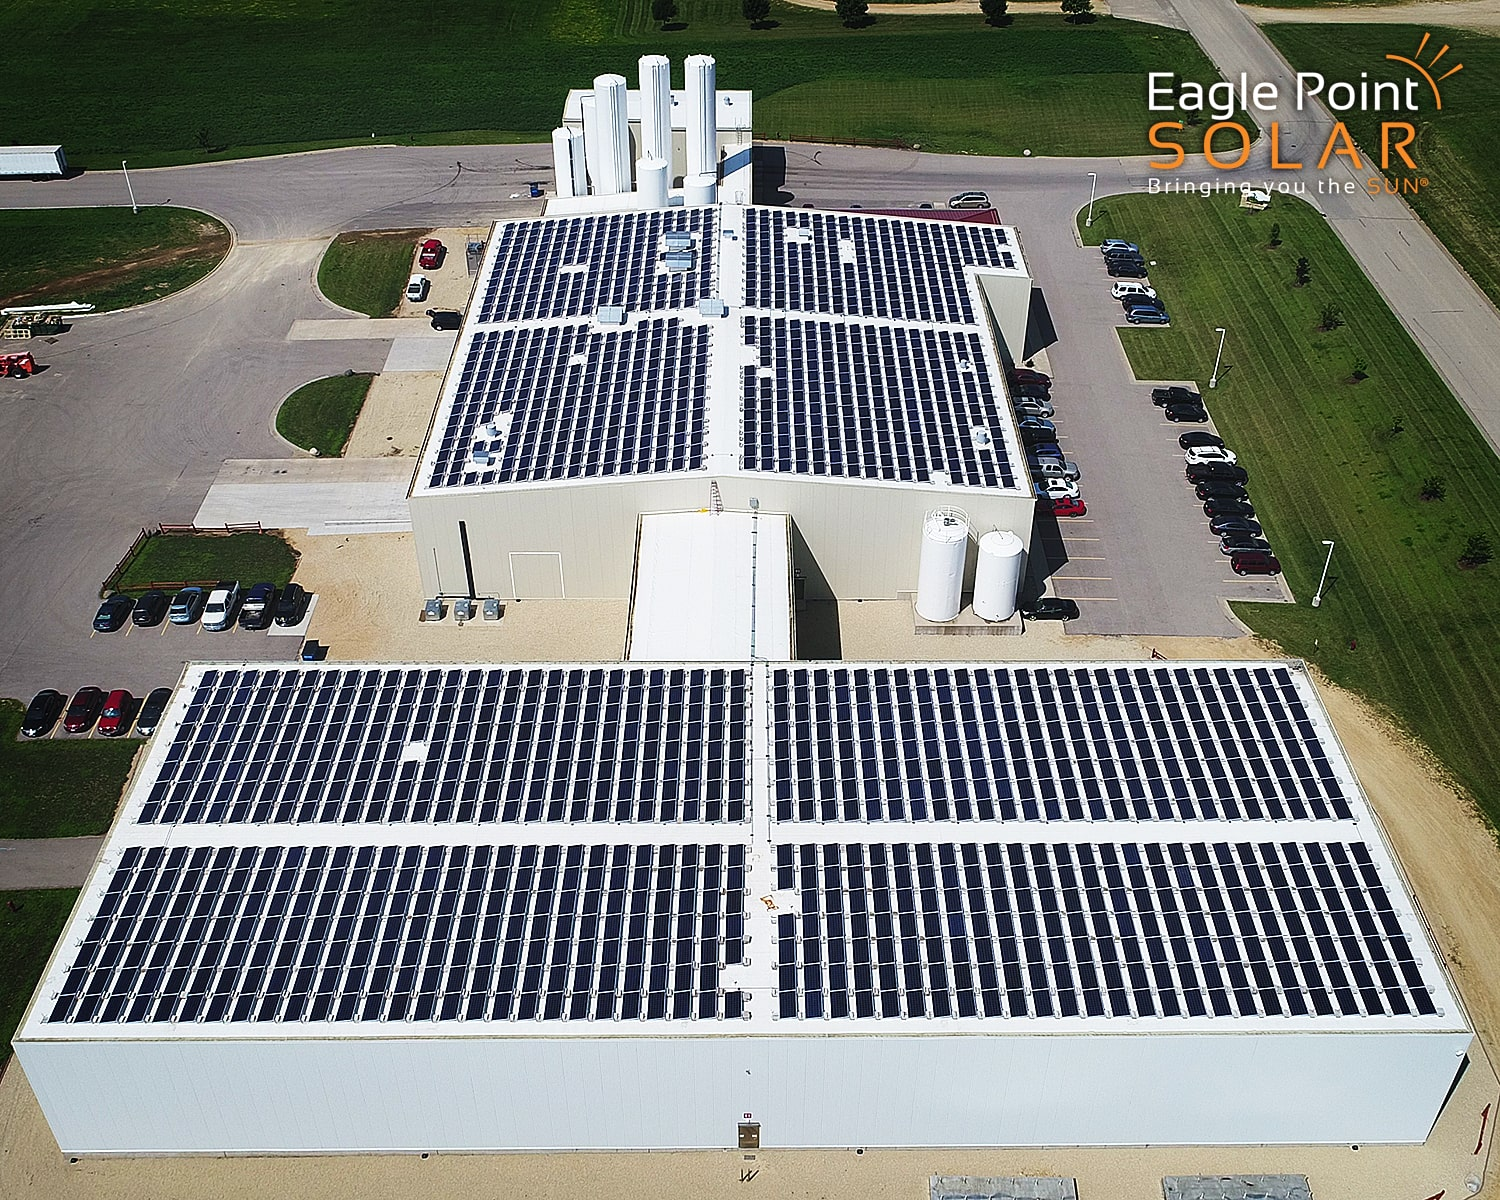 Photo of commercial roof mounted solar array on Emmi roth